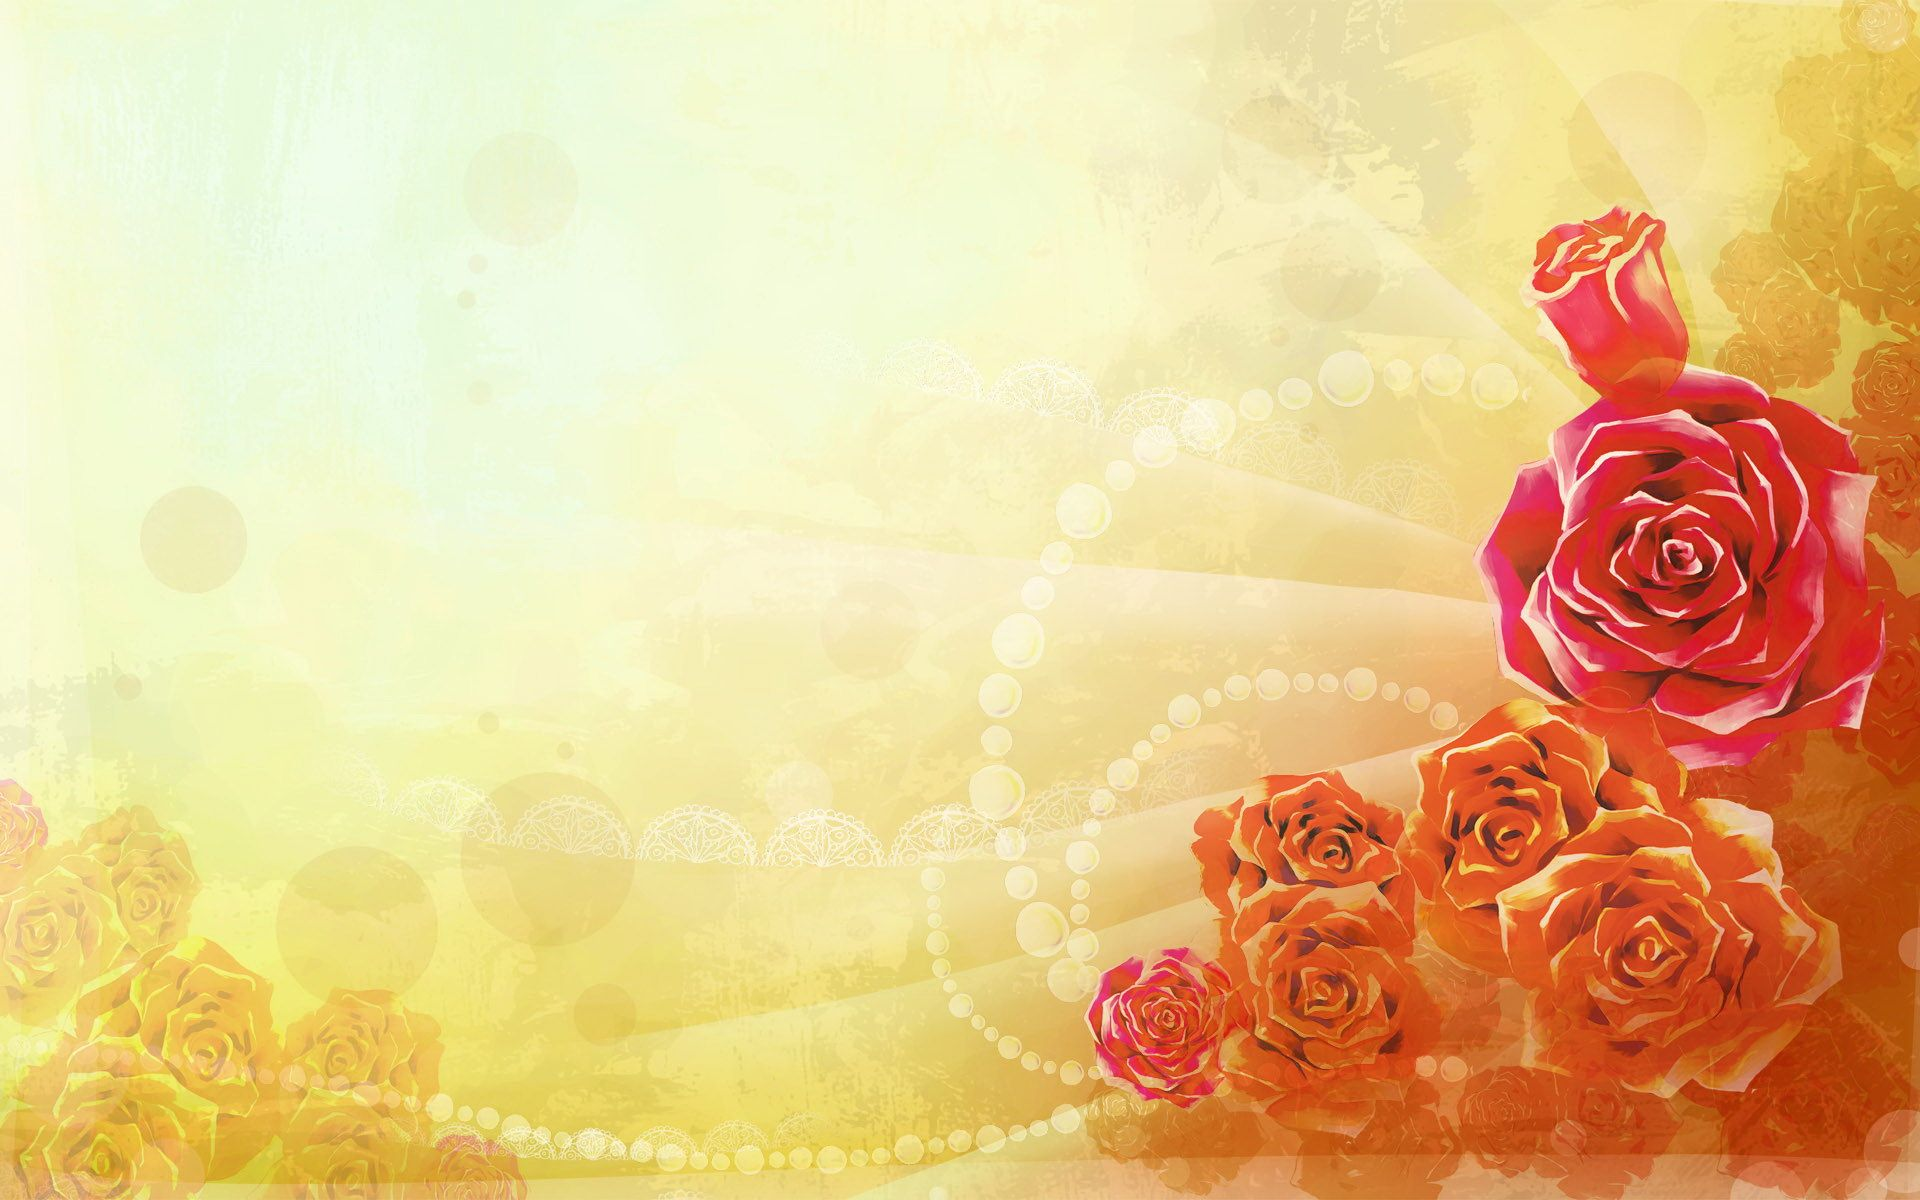 Red rose flower wave PowerPoint background. Available in 1920x1200 ...